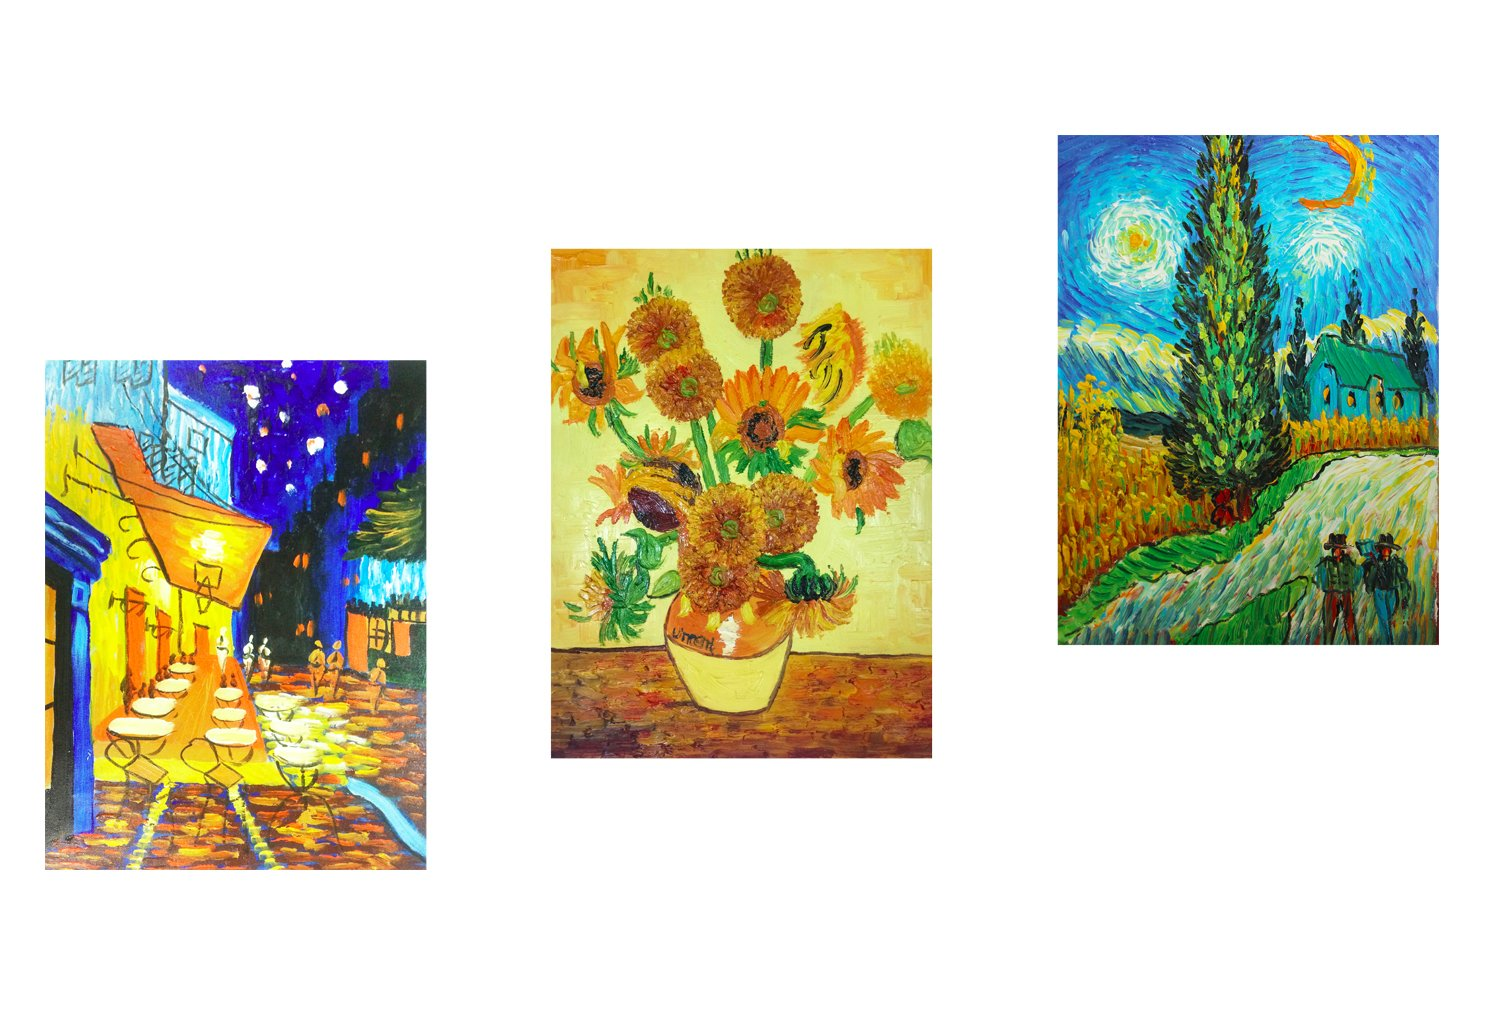 Fokenzary Hand Painted Oil Painting on Canvas Vincent Van Gogh Classical Famous Artworks 3 Panels Combination Wall Decor Framed Ready to Hang Others